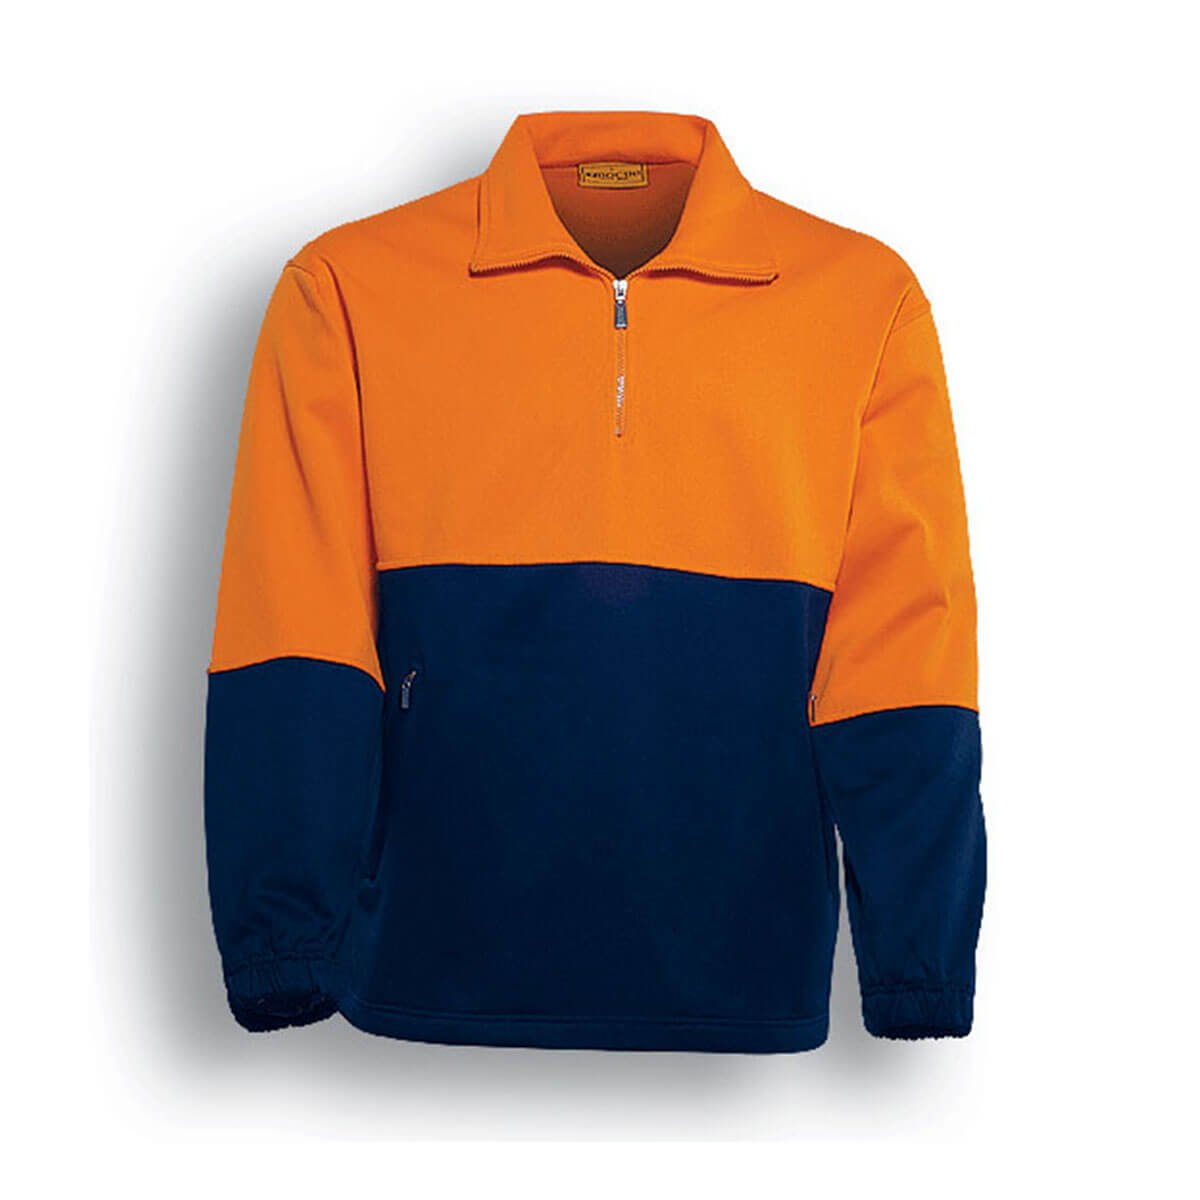 HI-VIS 1/2 ZIP FLEECE